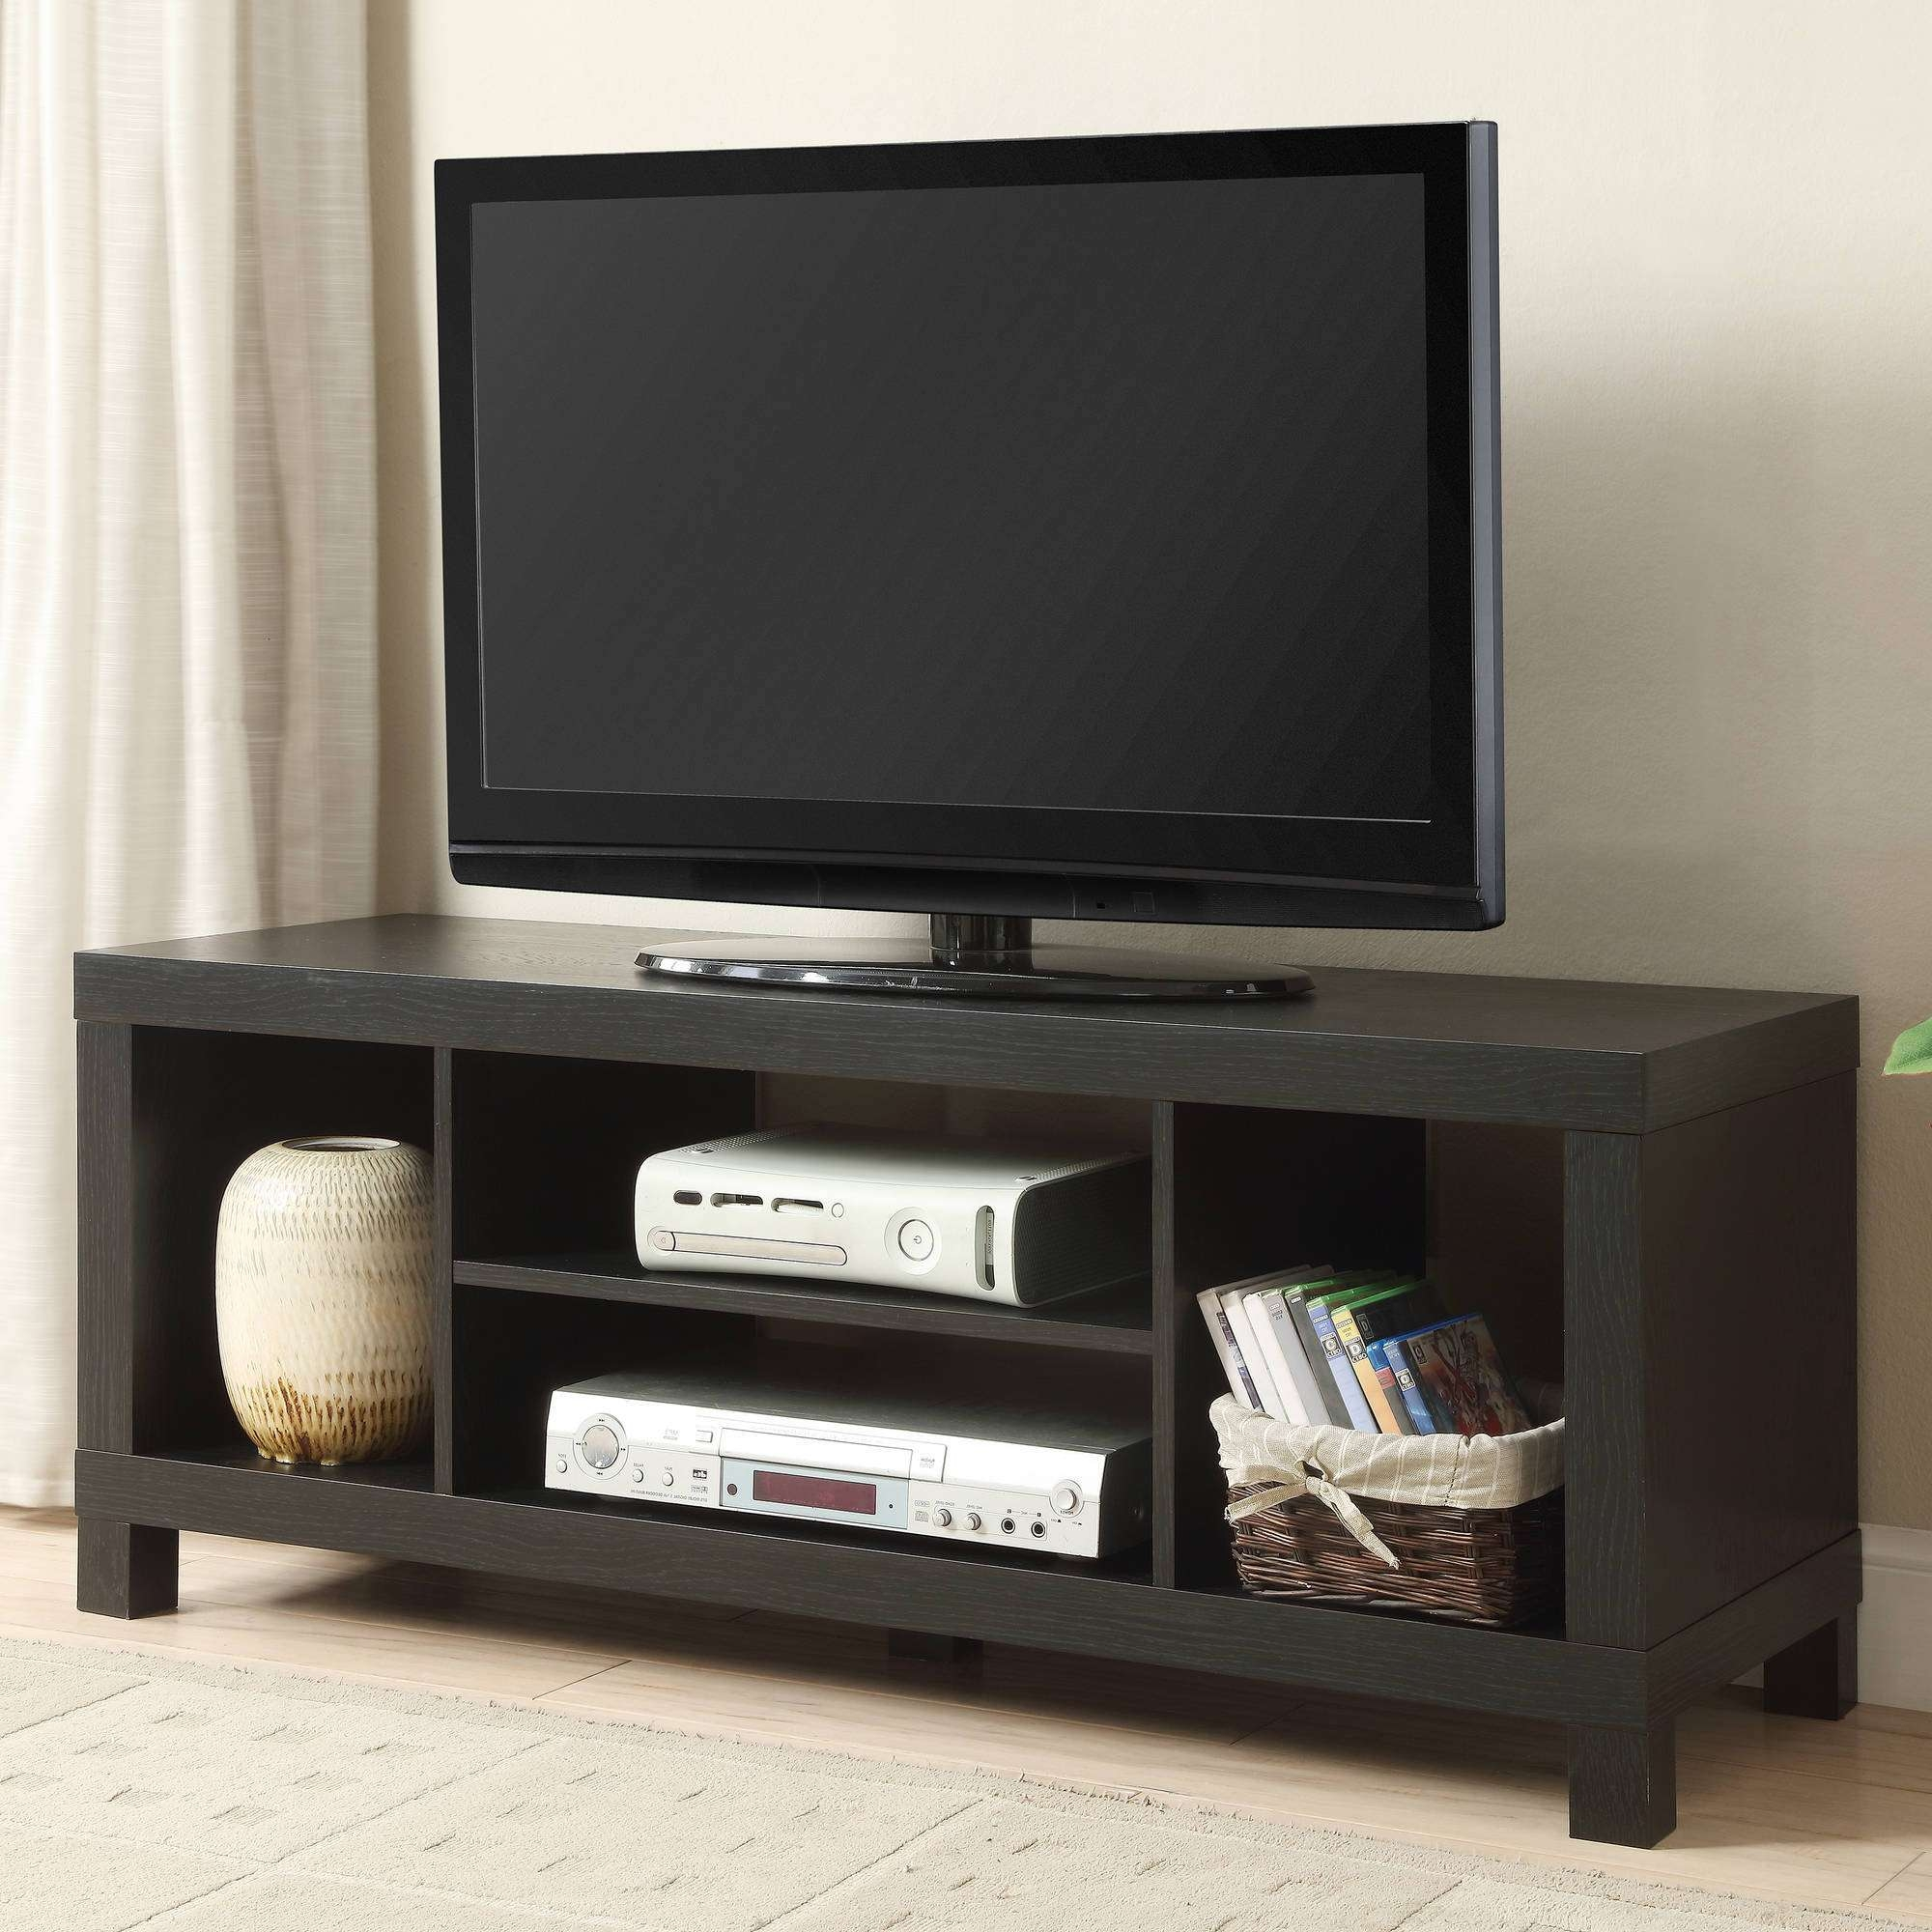 Tv Stands – Walmart Regarding Rustic 60 Inch Tv Stands (View 14 of 15)